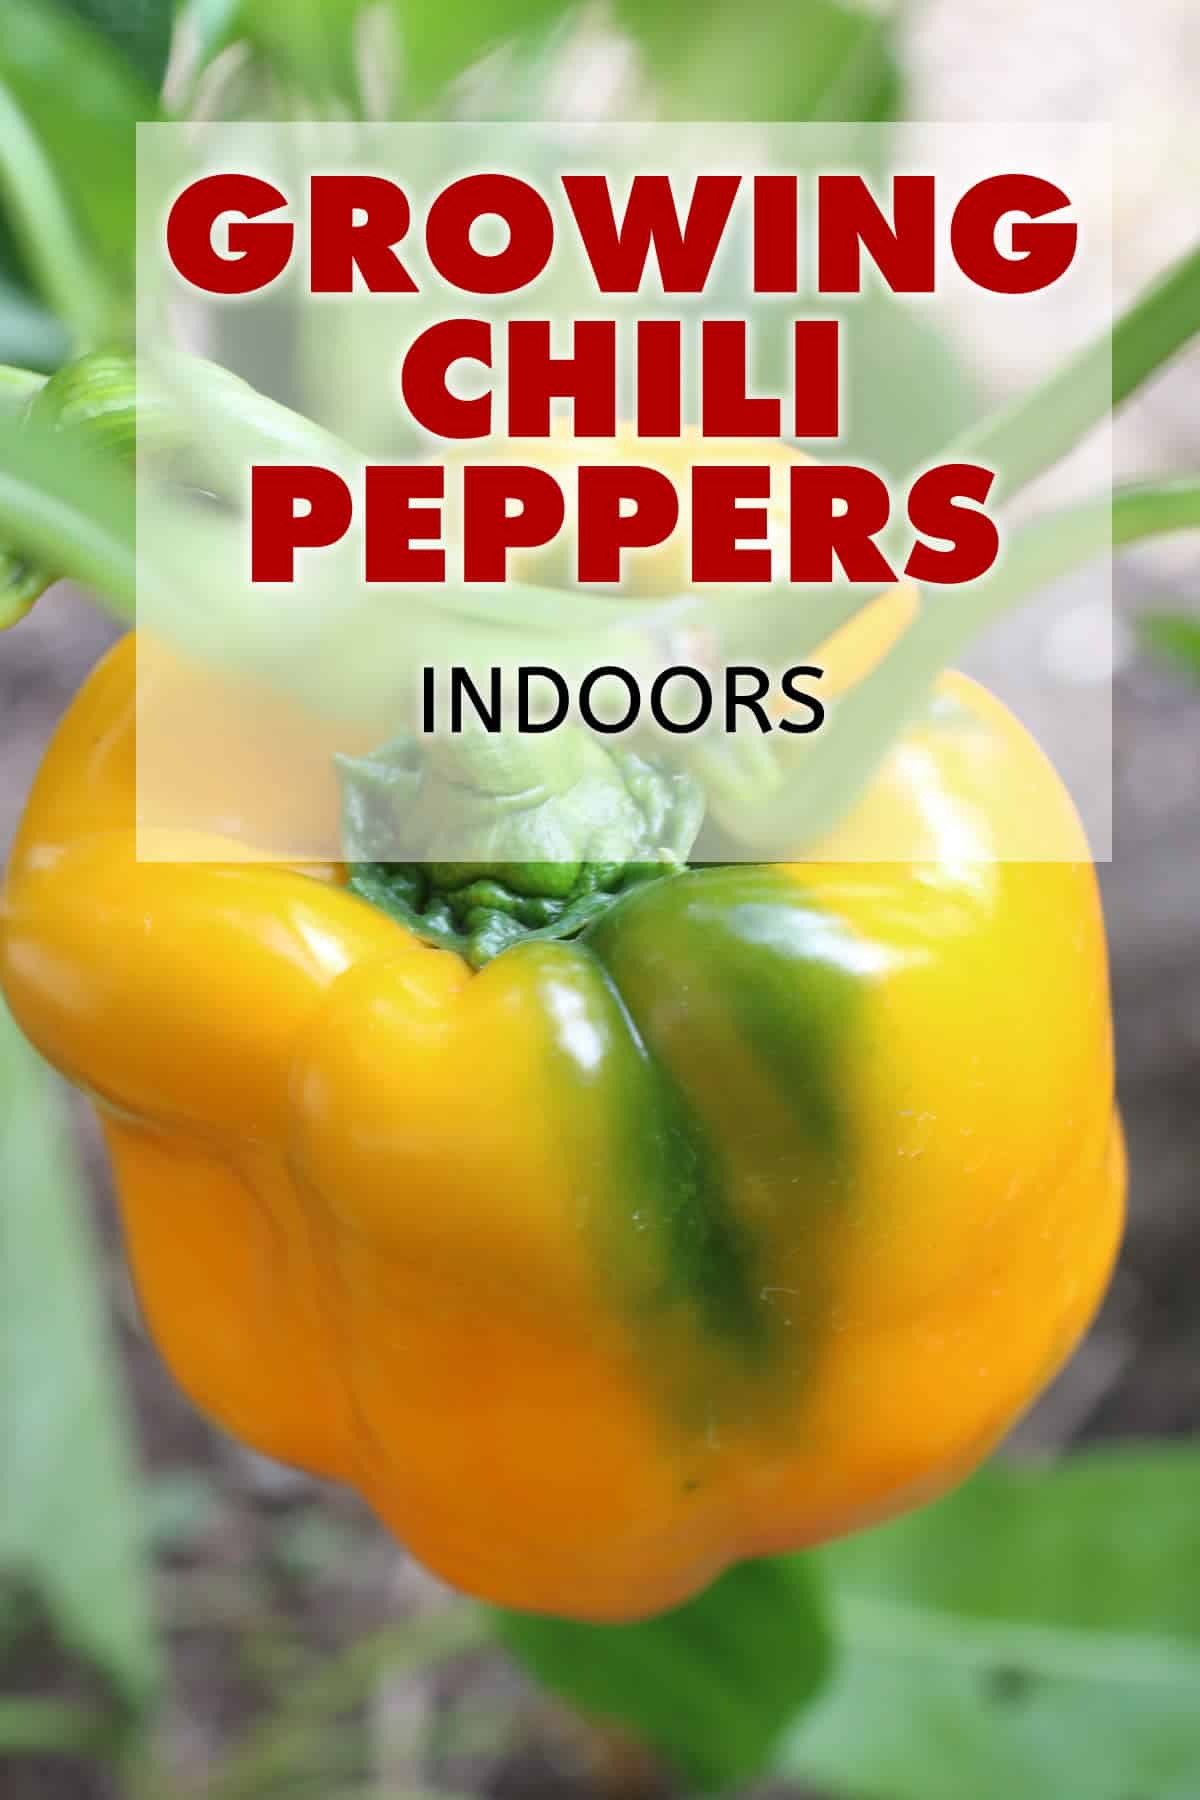 Growing Chili Peppers Indoors